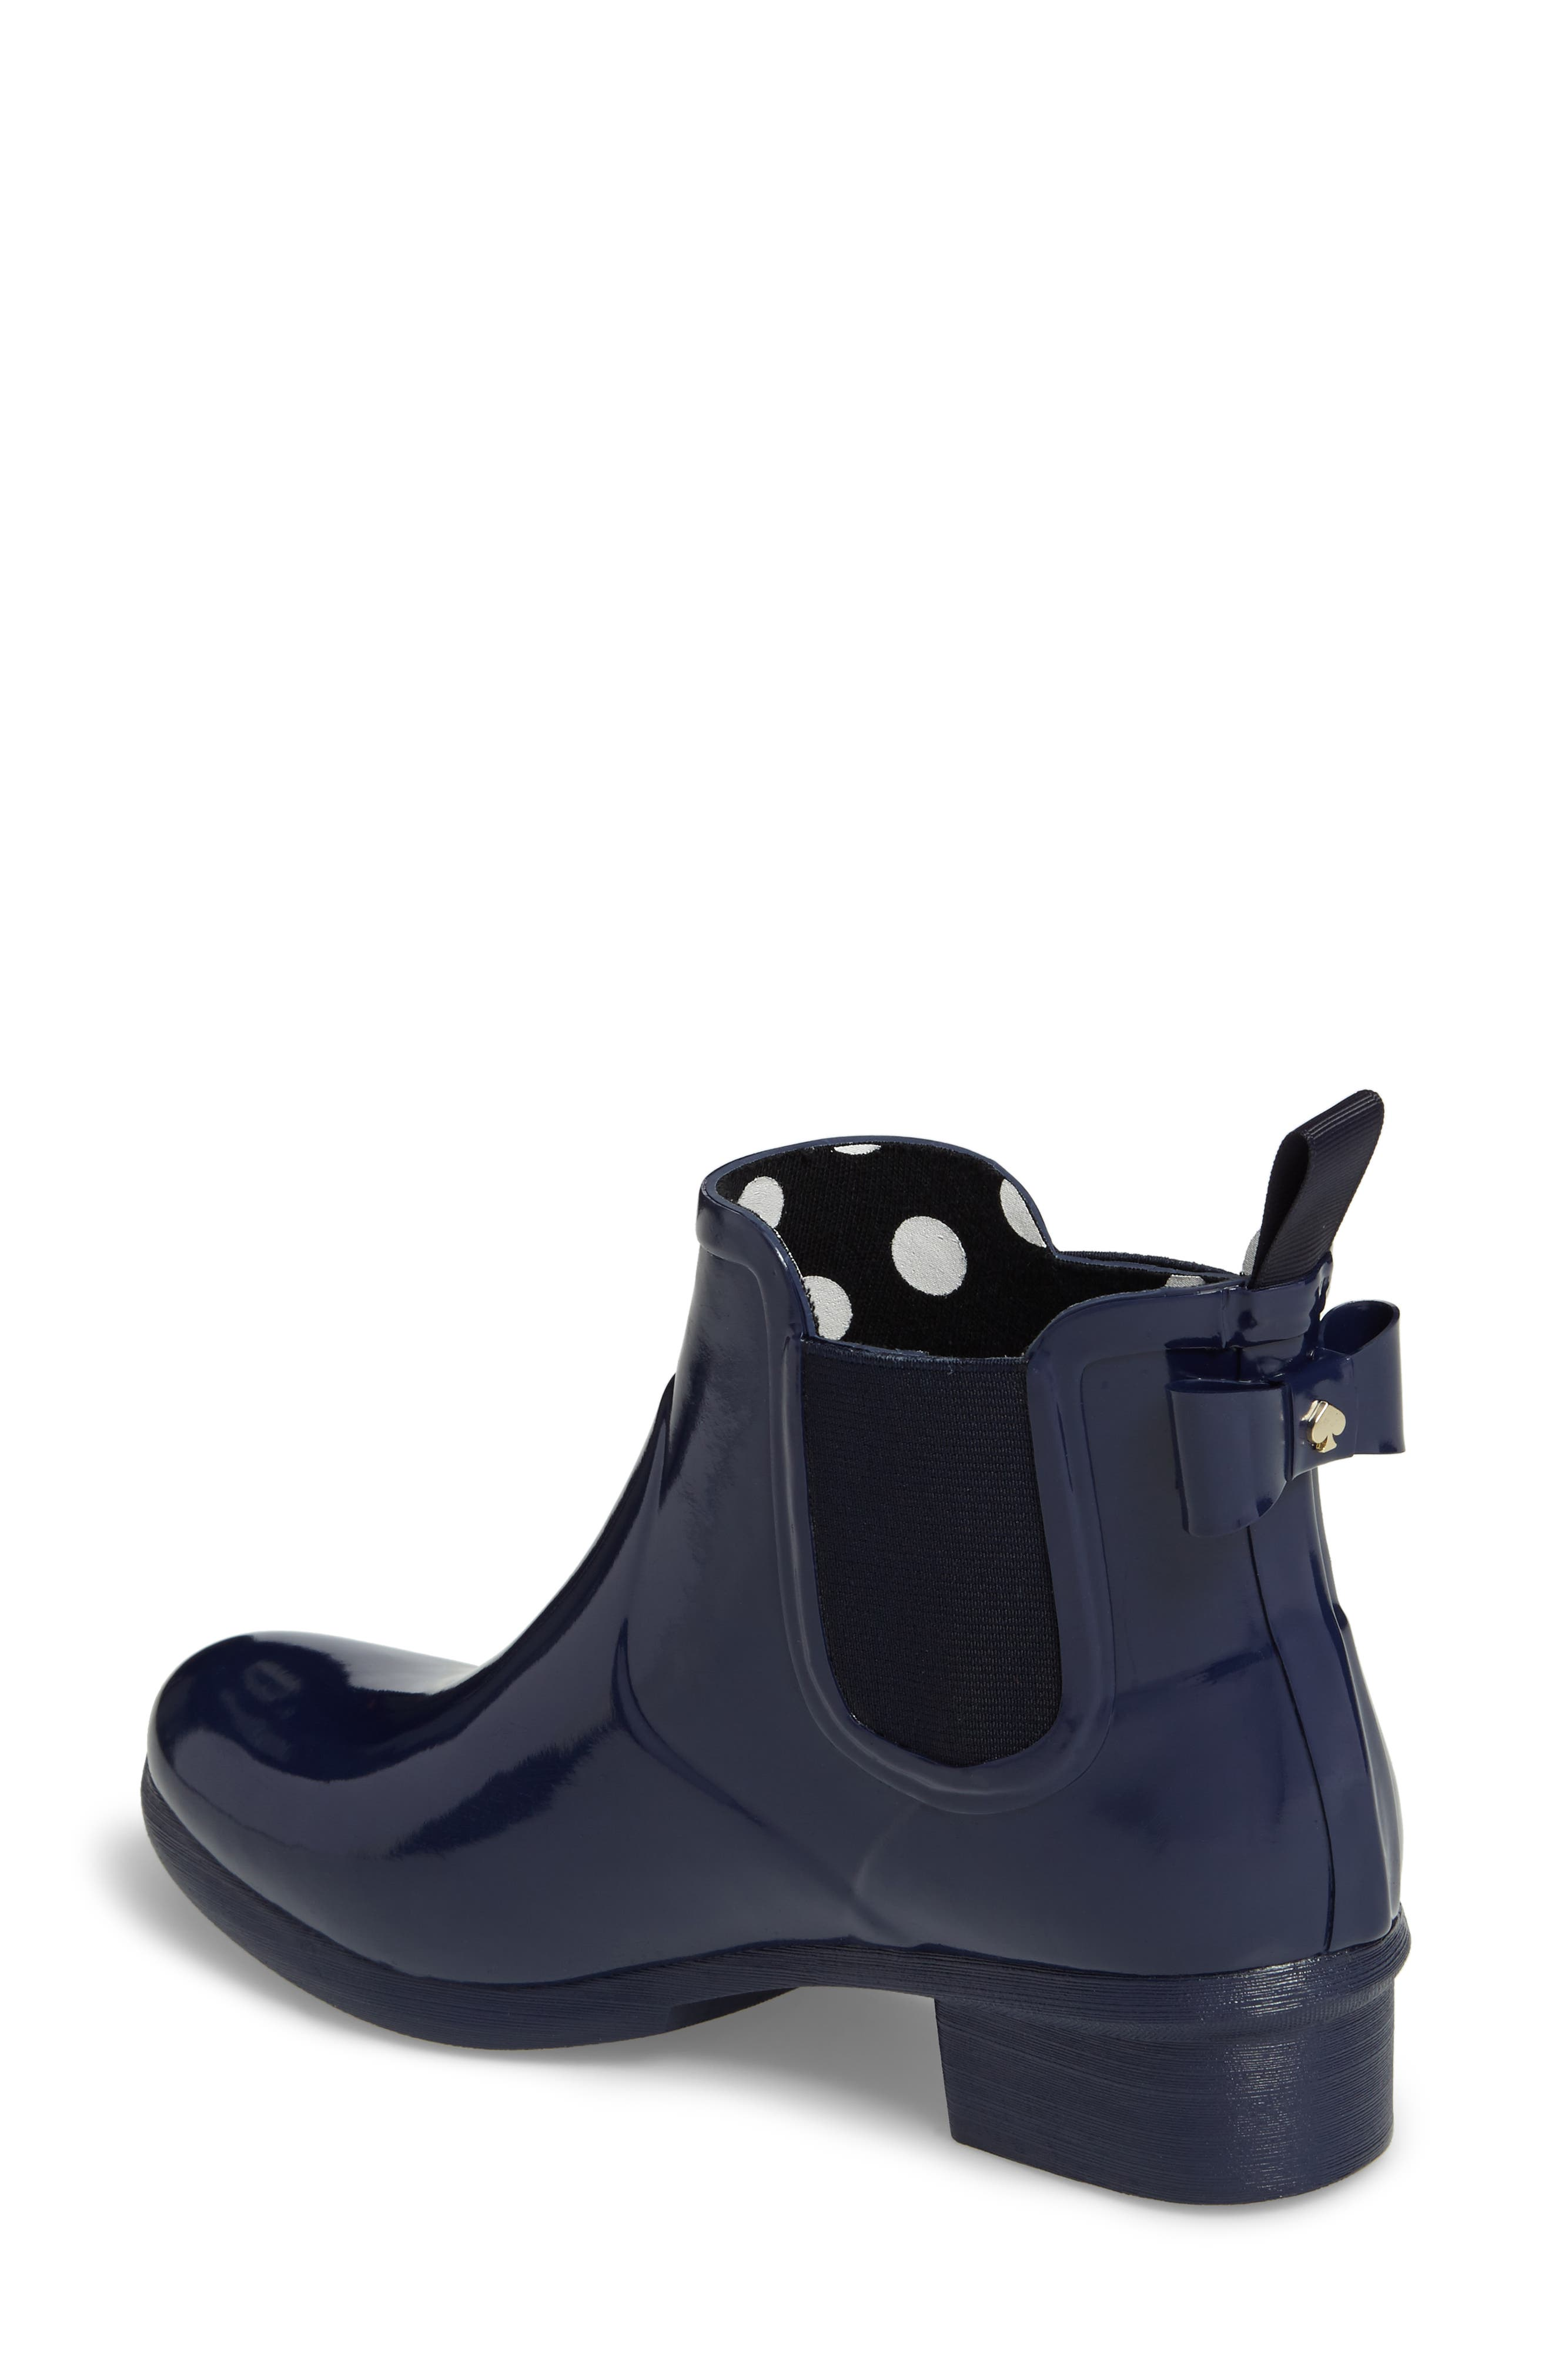 telly chelsea rain bootie,                             Alternate thumbnail 2, color,                             New Navy Shiny Rubber